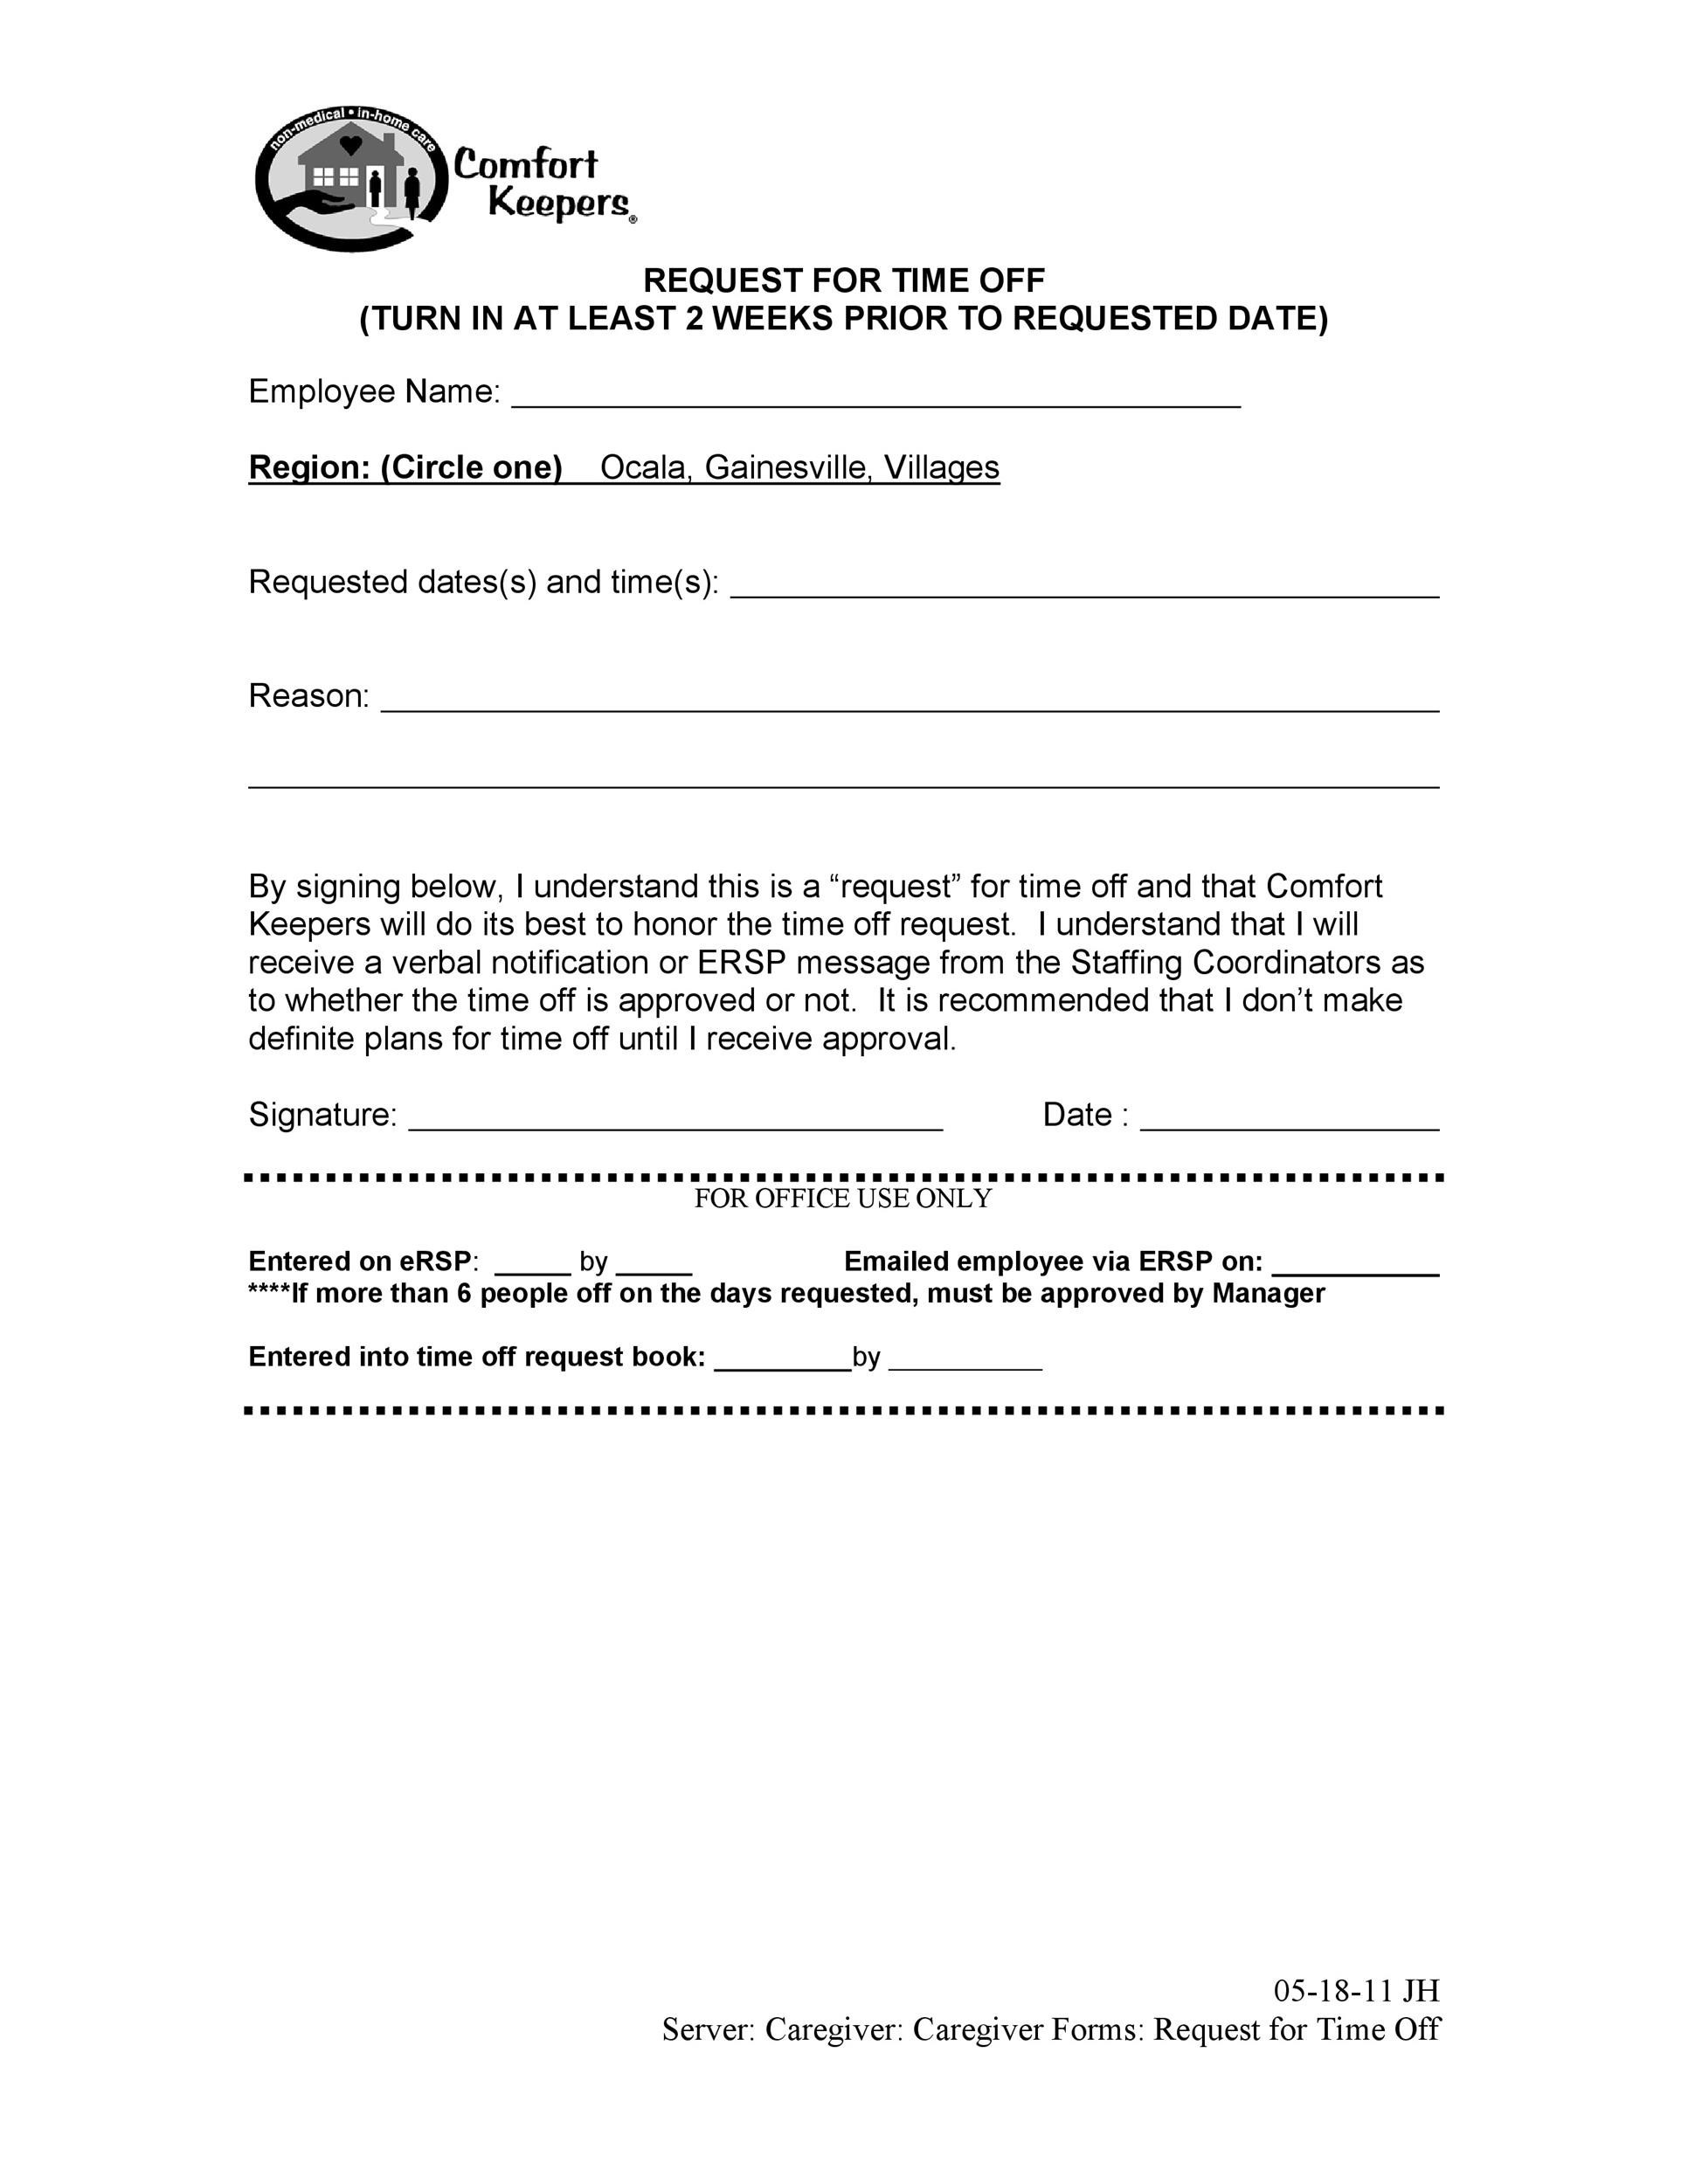 time off request form template 09 - Template Lab - time off request forms